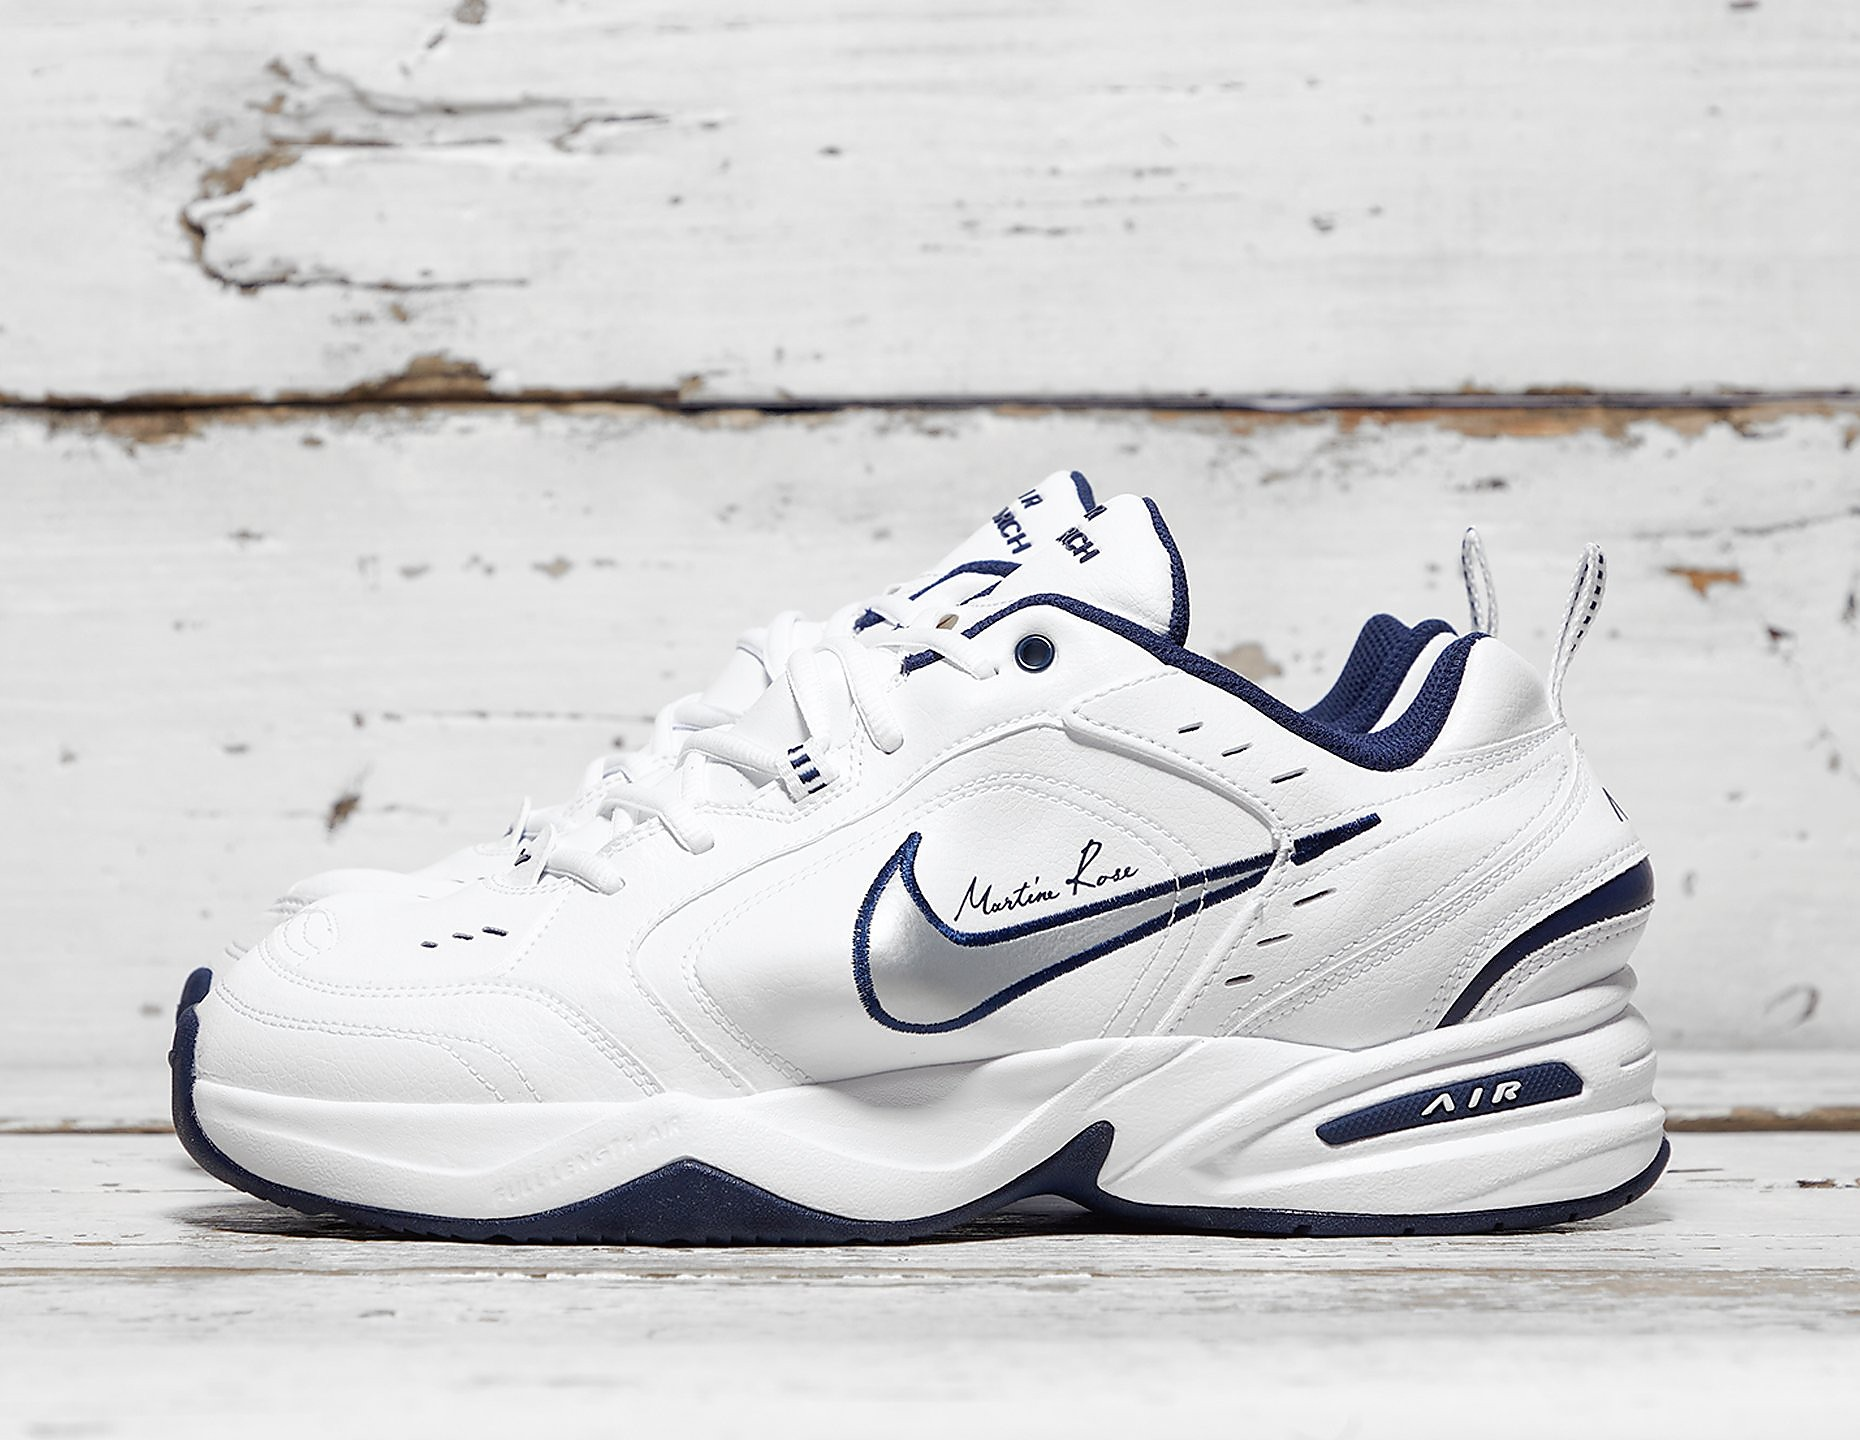 Nike x Martine Rose Air Monarch IV